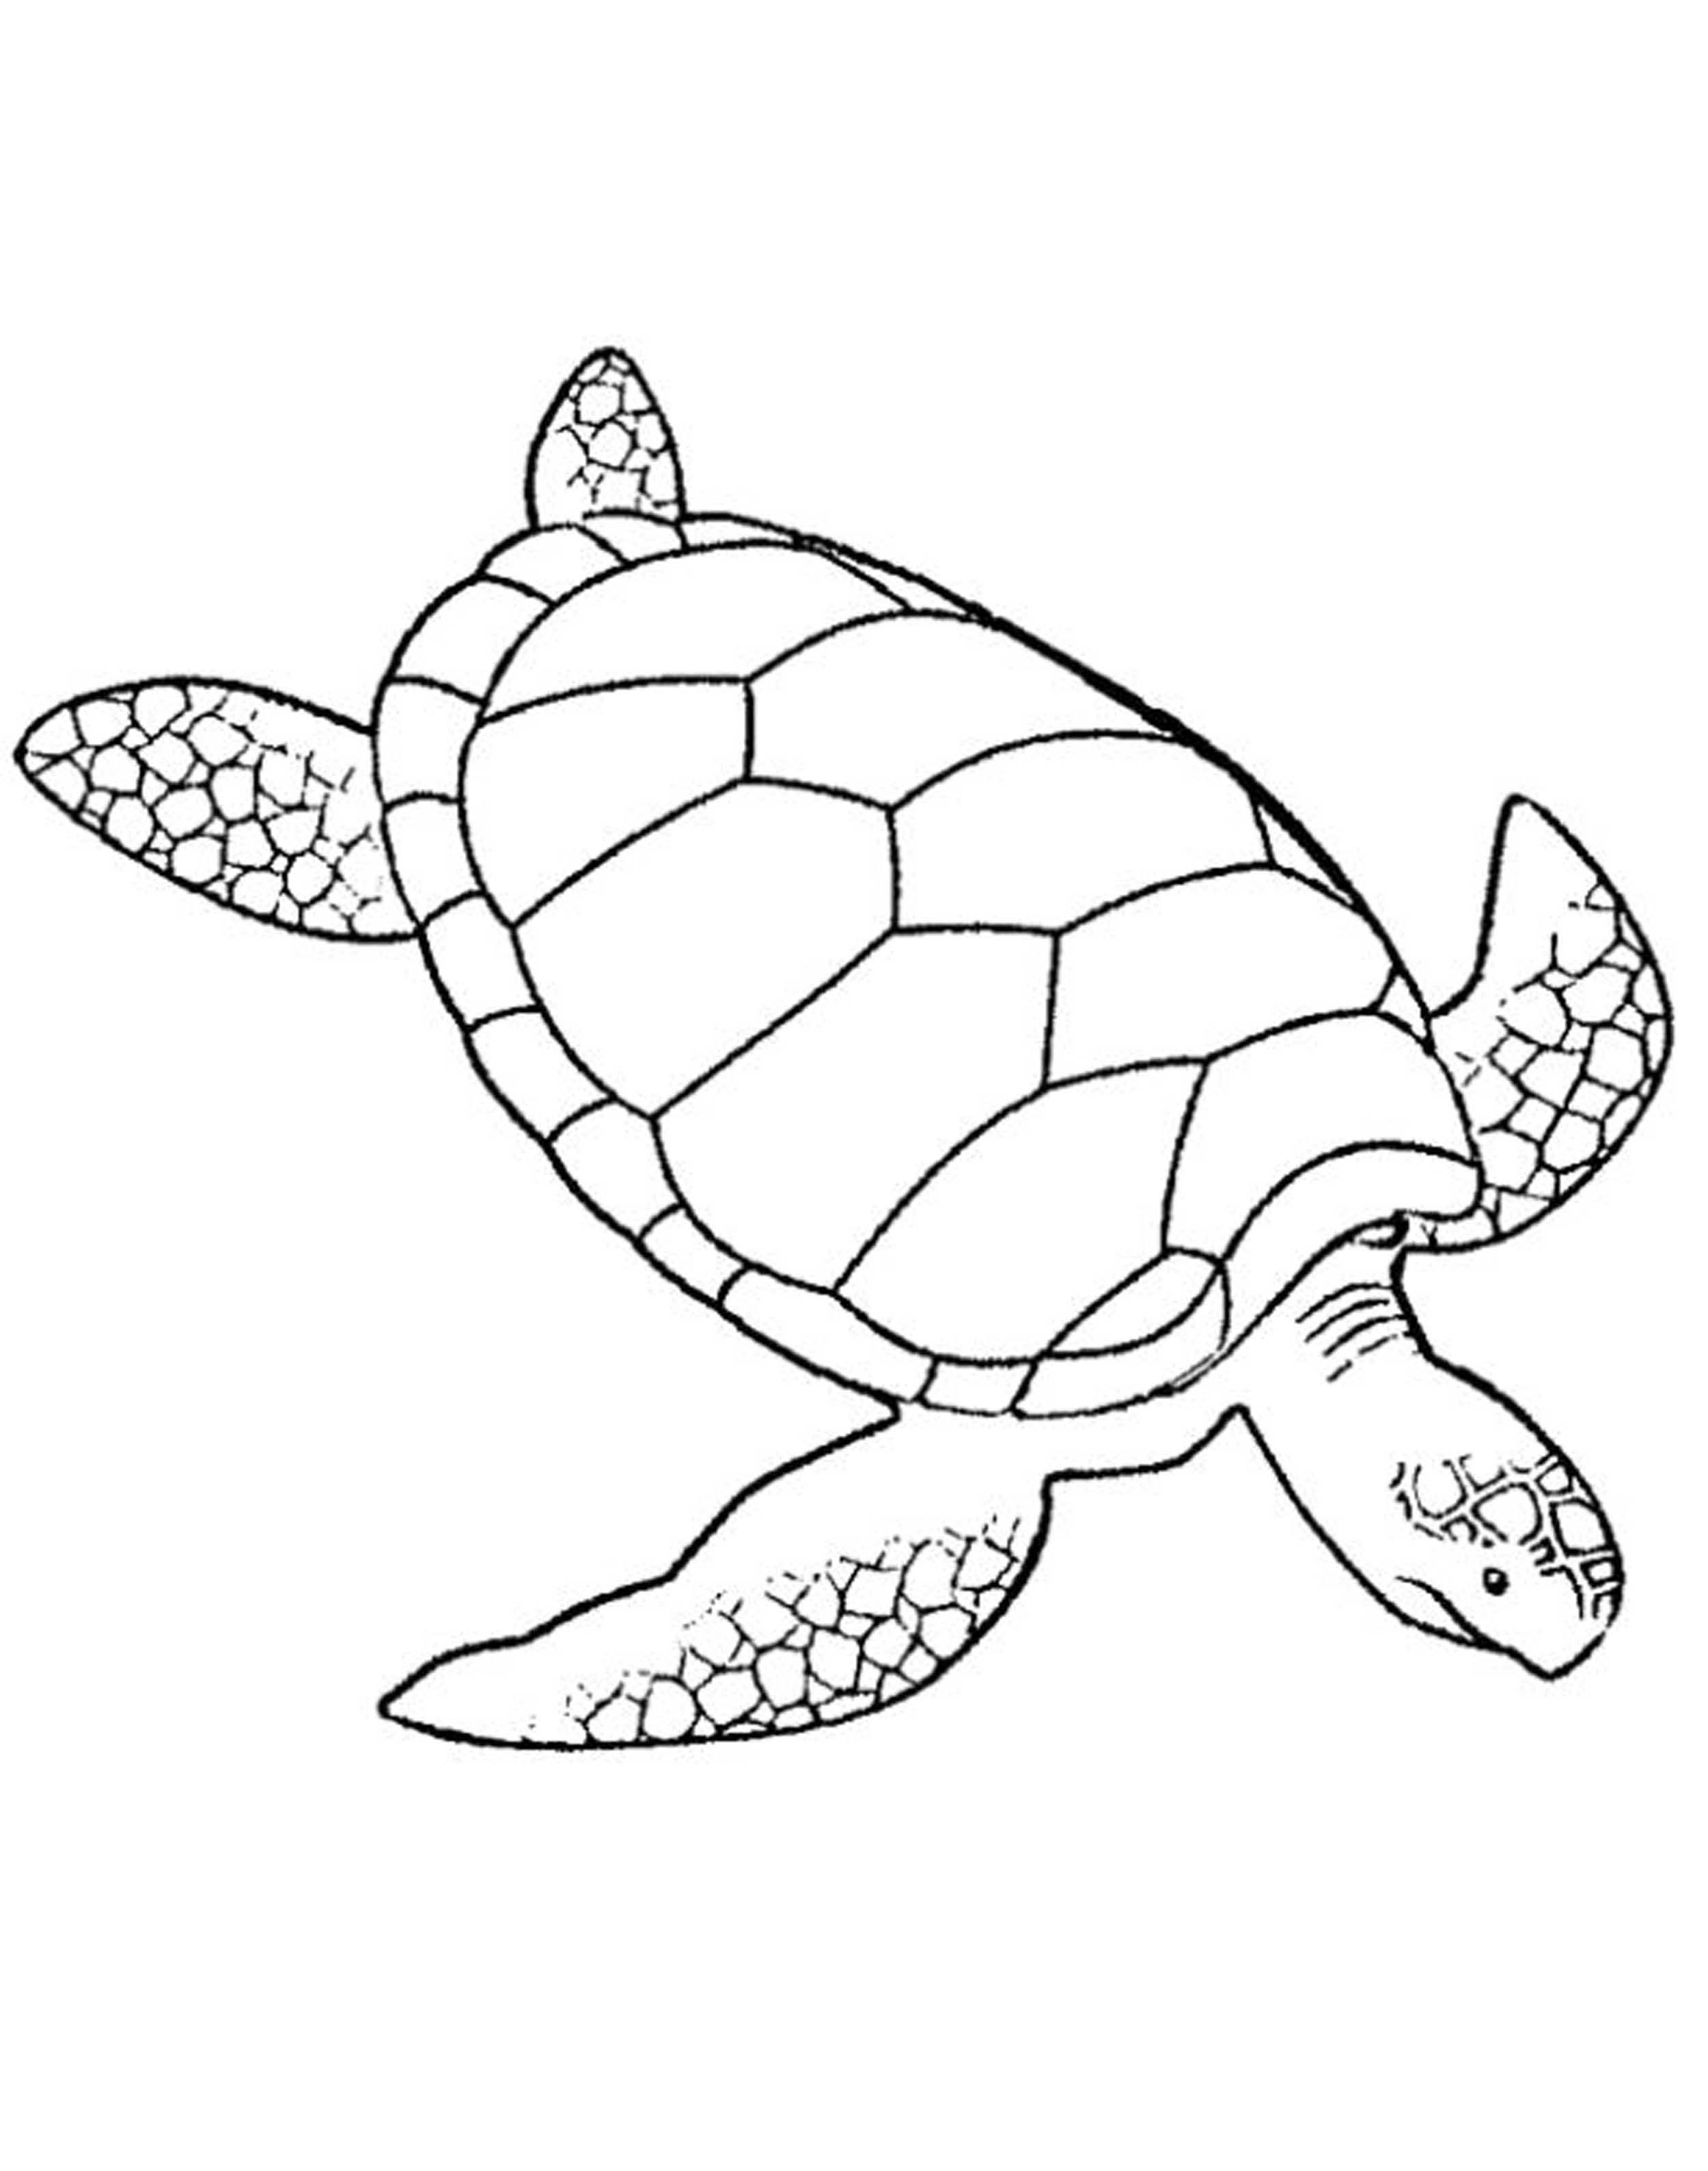 Turtles colouring